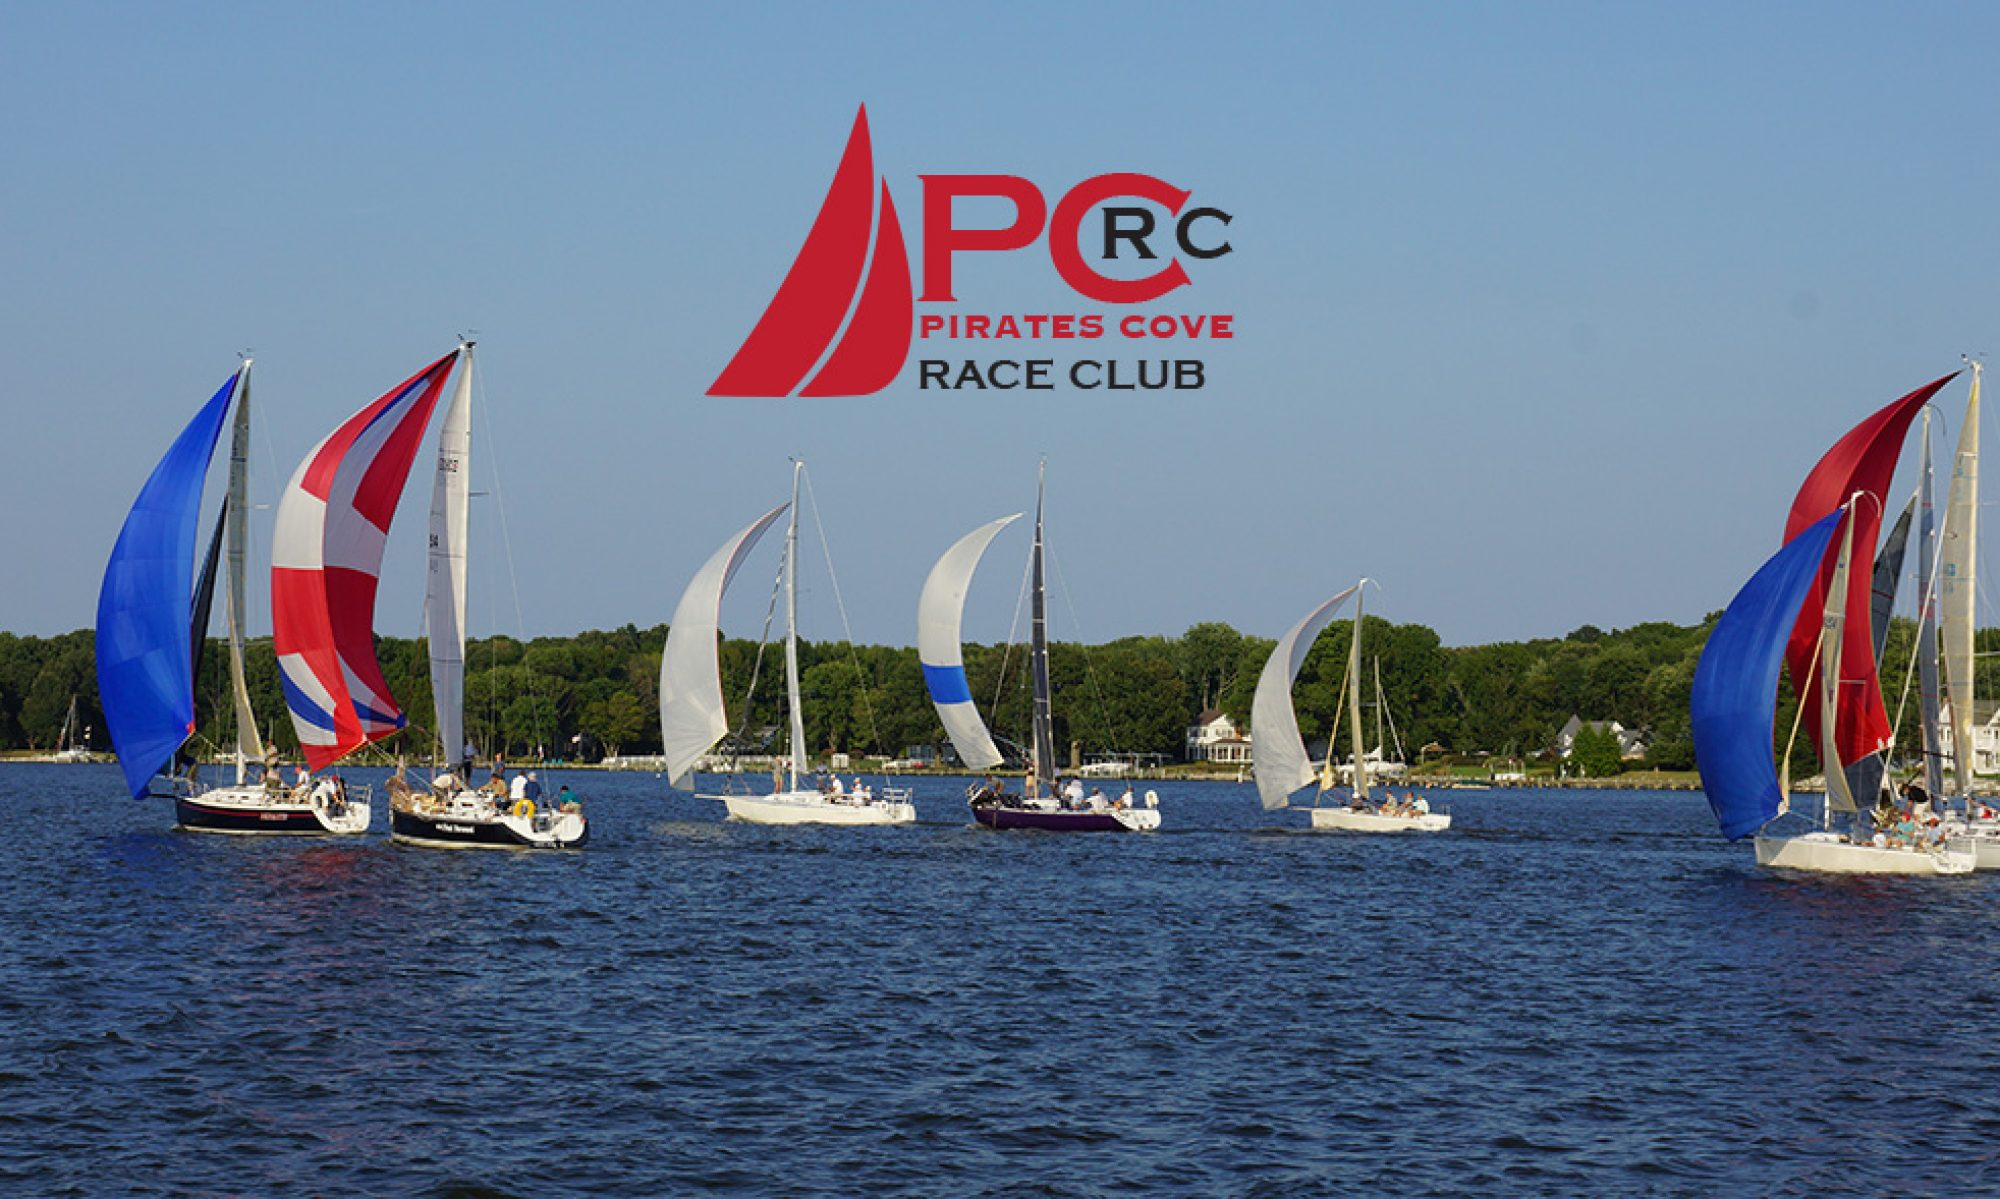 Pirates Cove Race Club - OLD SITE